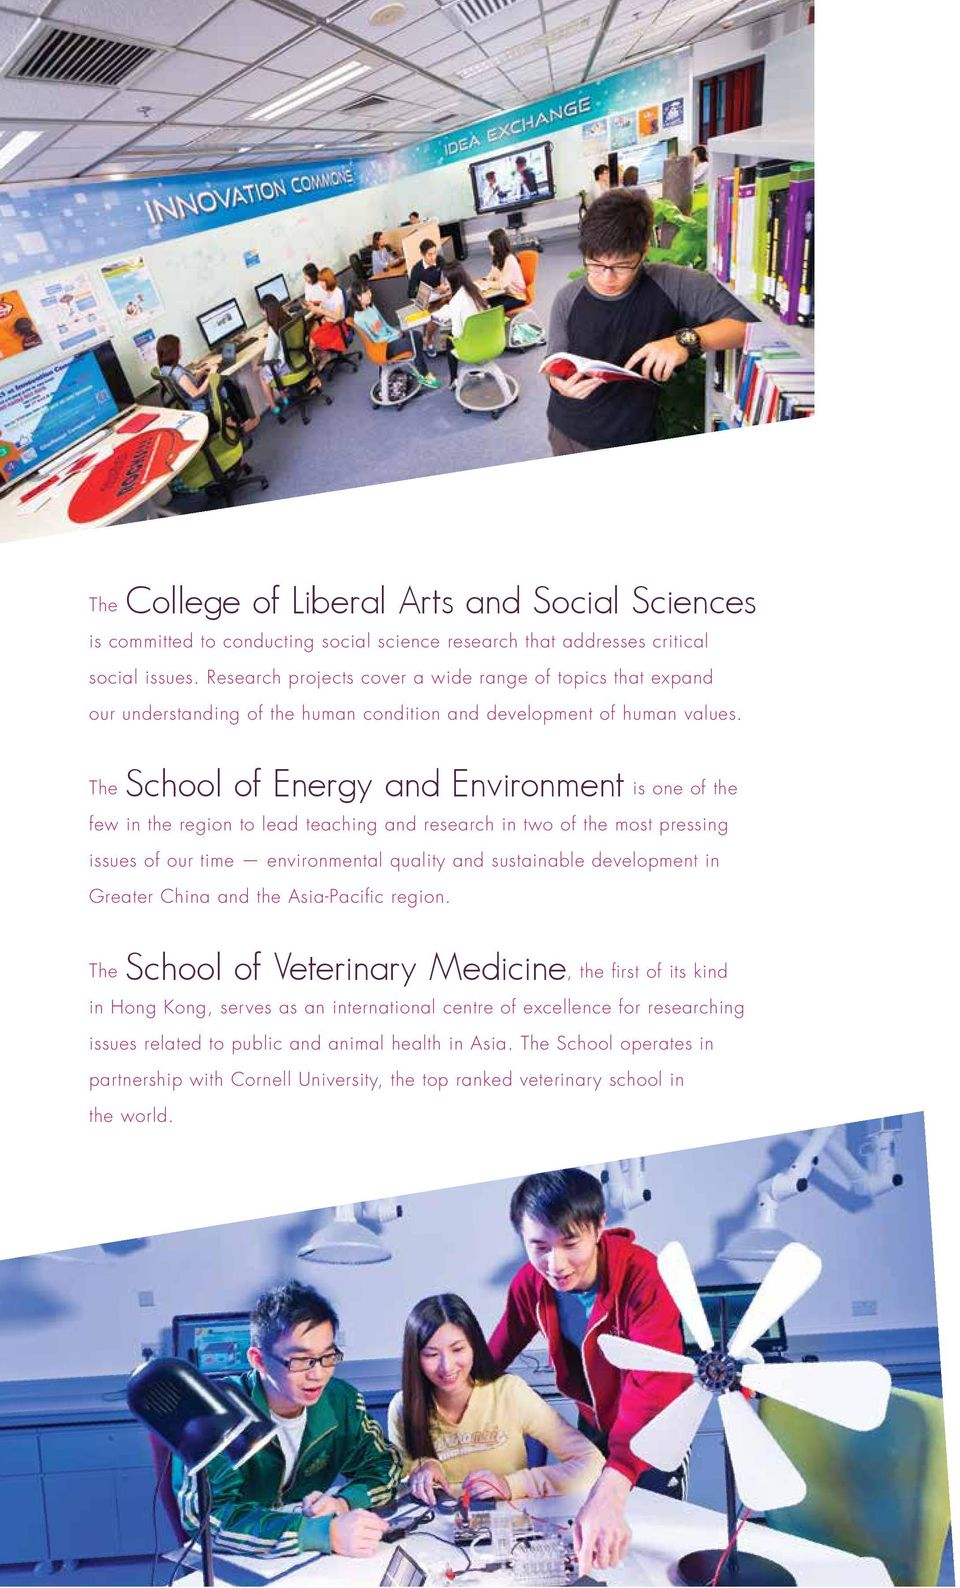 The School of Energy and Environment is one of the few in the region to lead teaching and research in two of the most pressing issues of our time environmental quality and sustainable development in